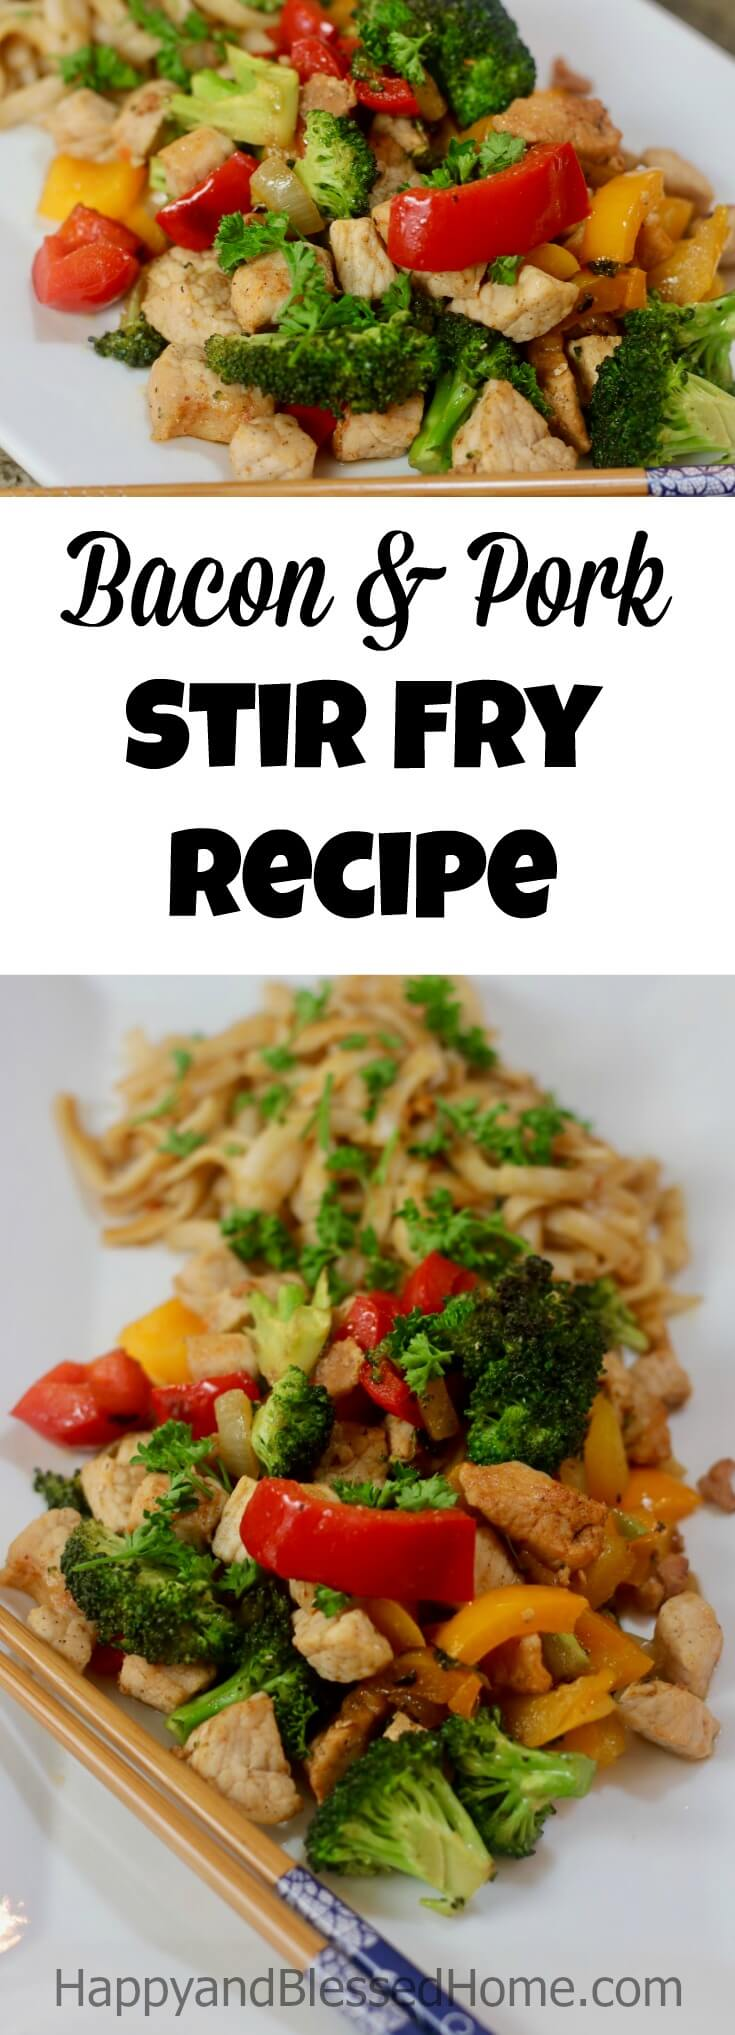 Easy Recipe Applewood Smoked Bacon and Pork Stir Fry Recipe